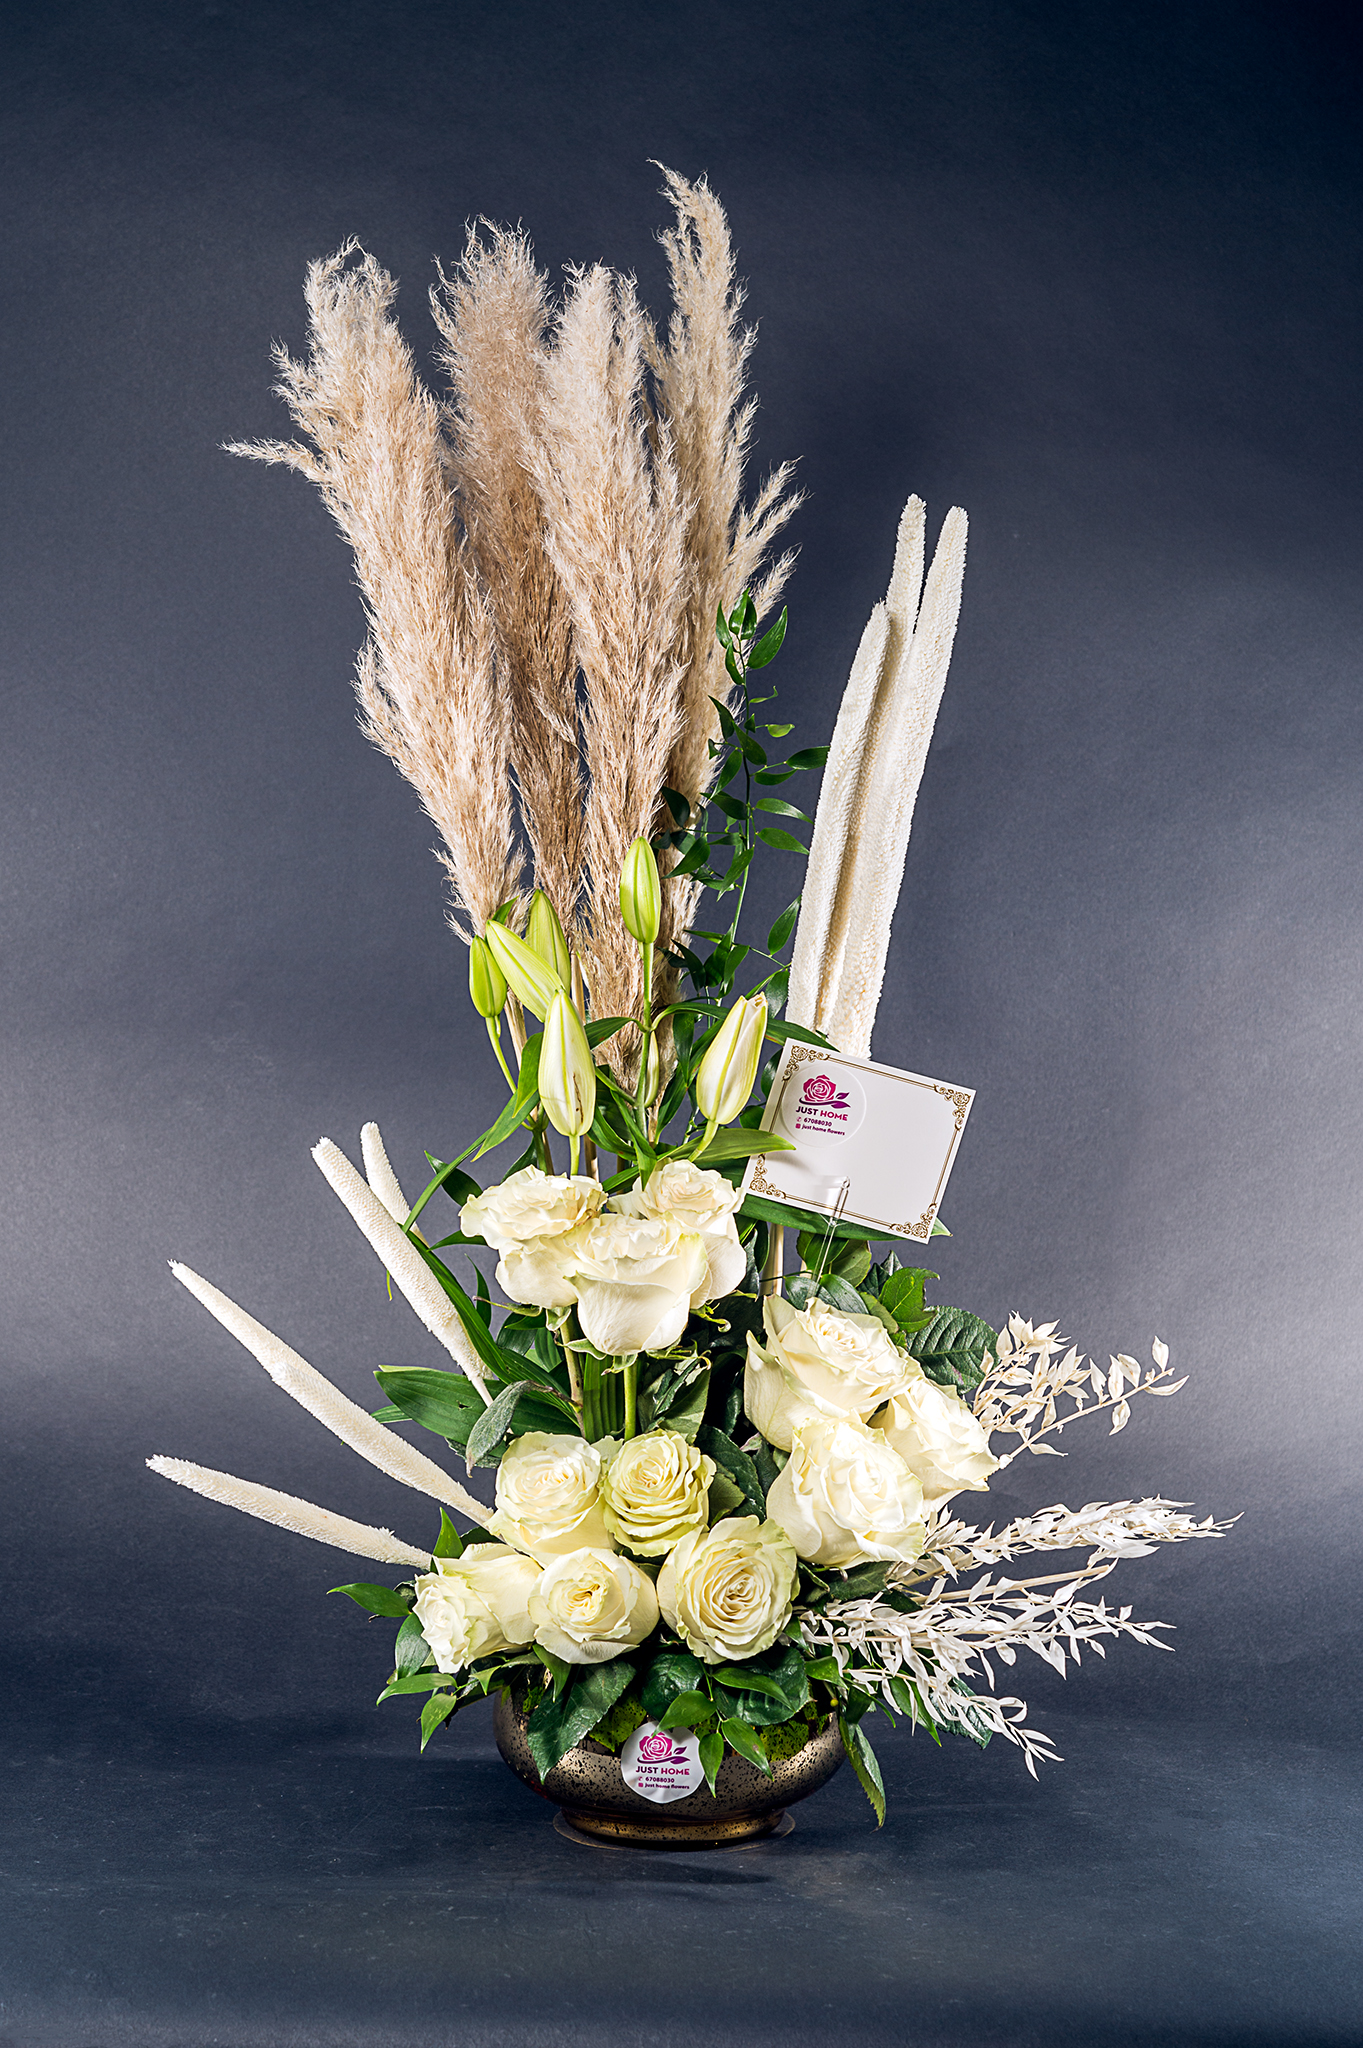 Purity Of Love 'Bouquets'